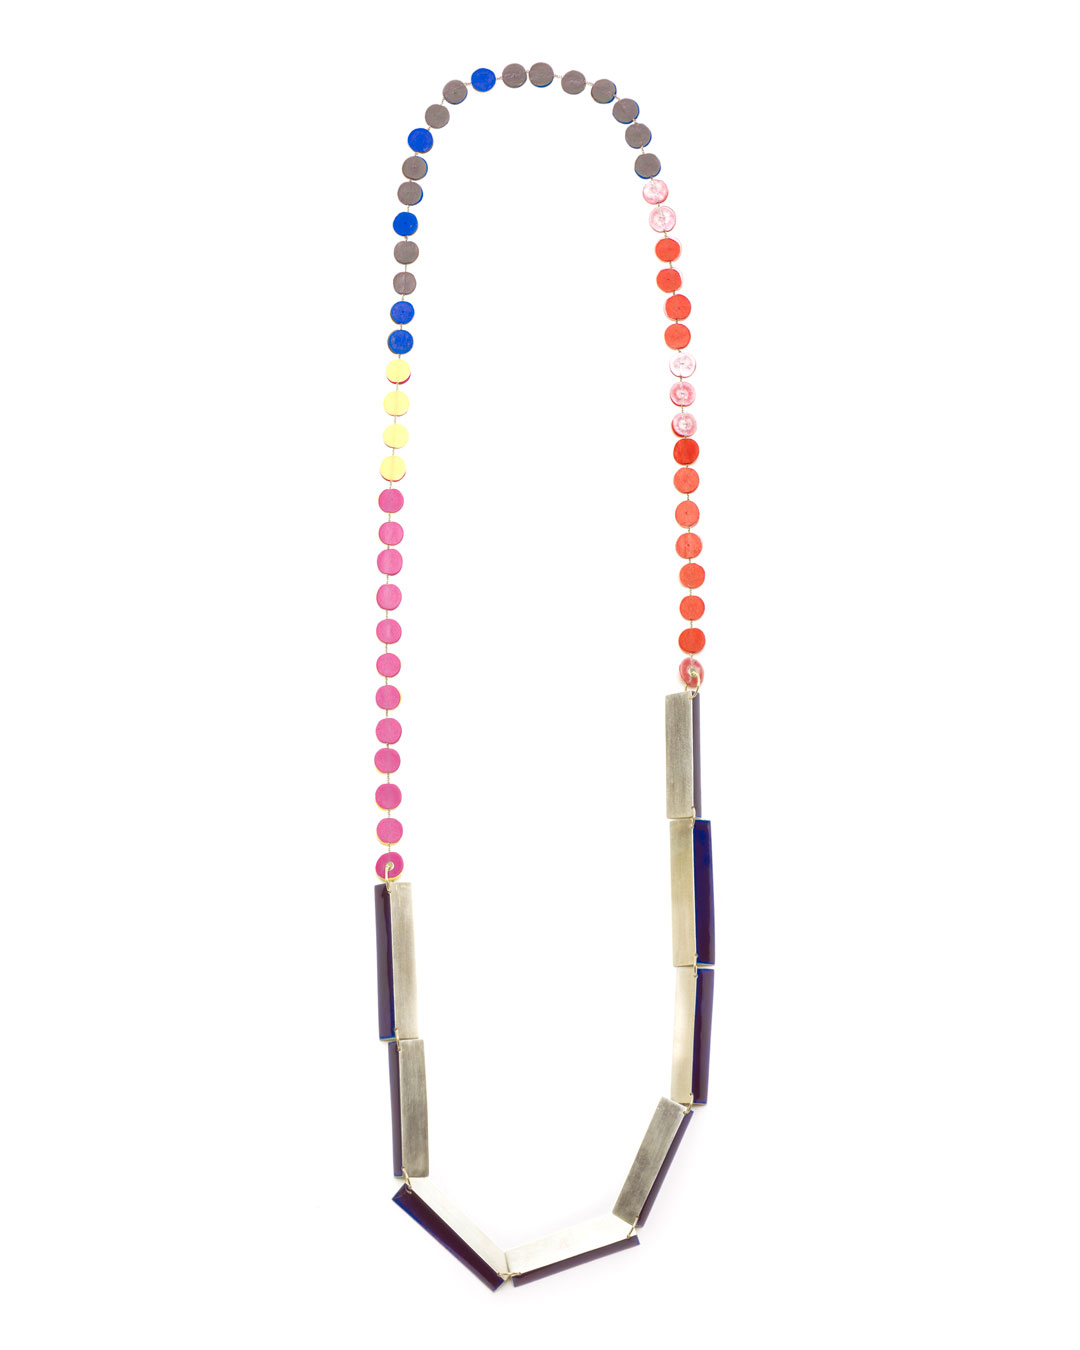 Karola Torkos, untitled, 2020, necklace; silver, 14ct gold, plastic, Ceramit enamel, L 1040 mm, €880